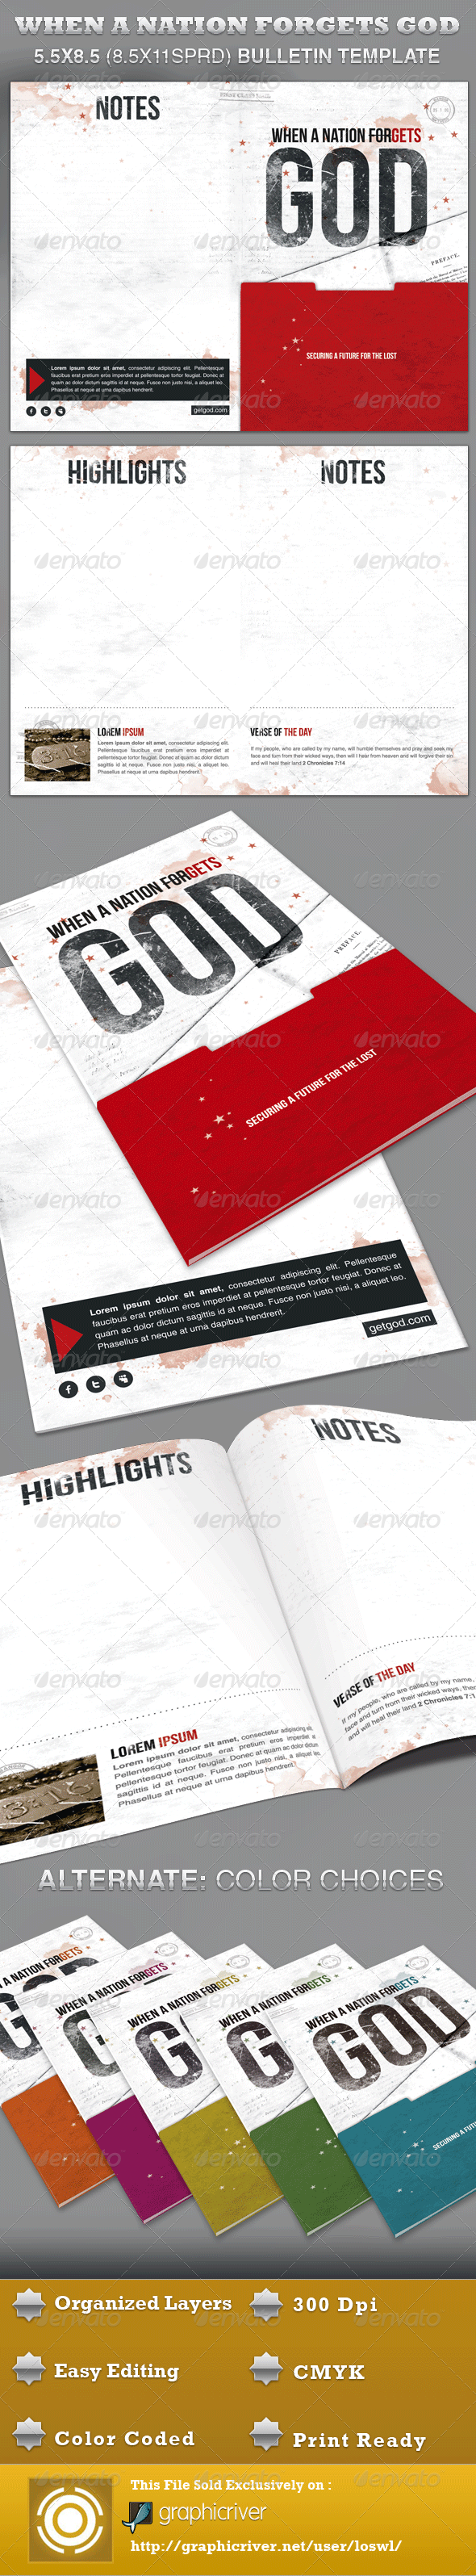 GraphicRiver When a Nation Forgets God Bulletin Template 3284799